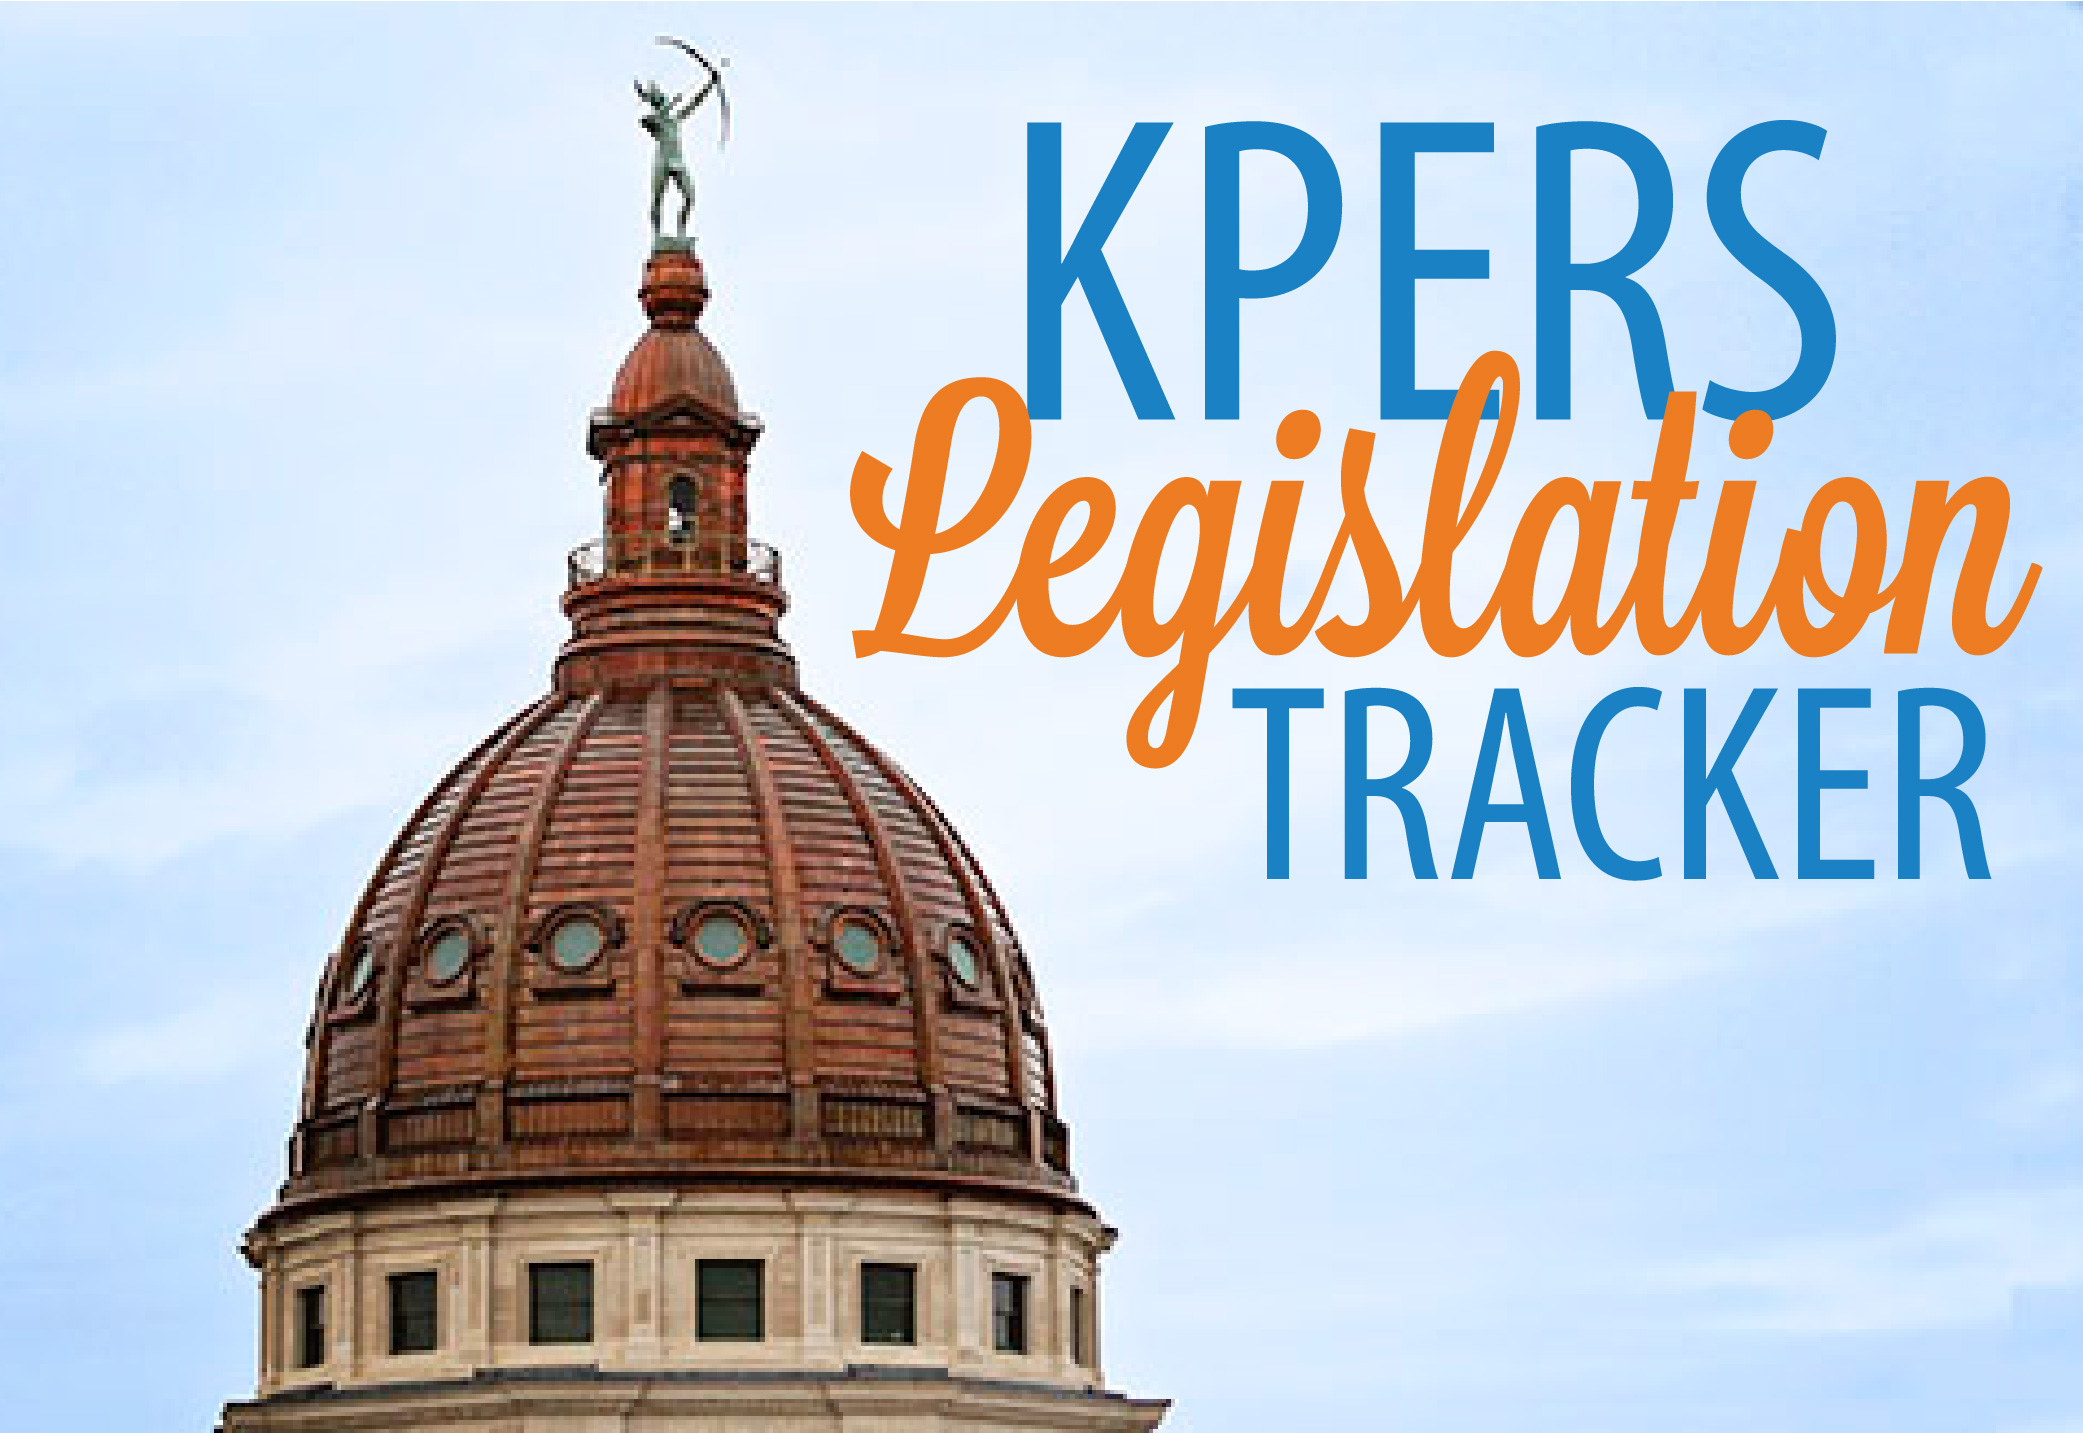 2017 KPERS related legislation